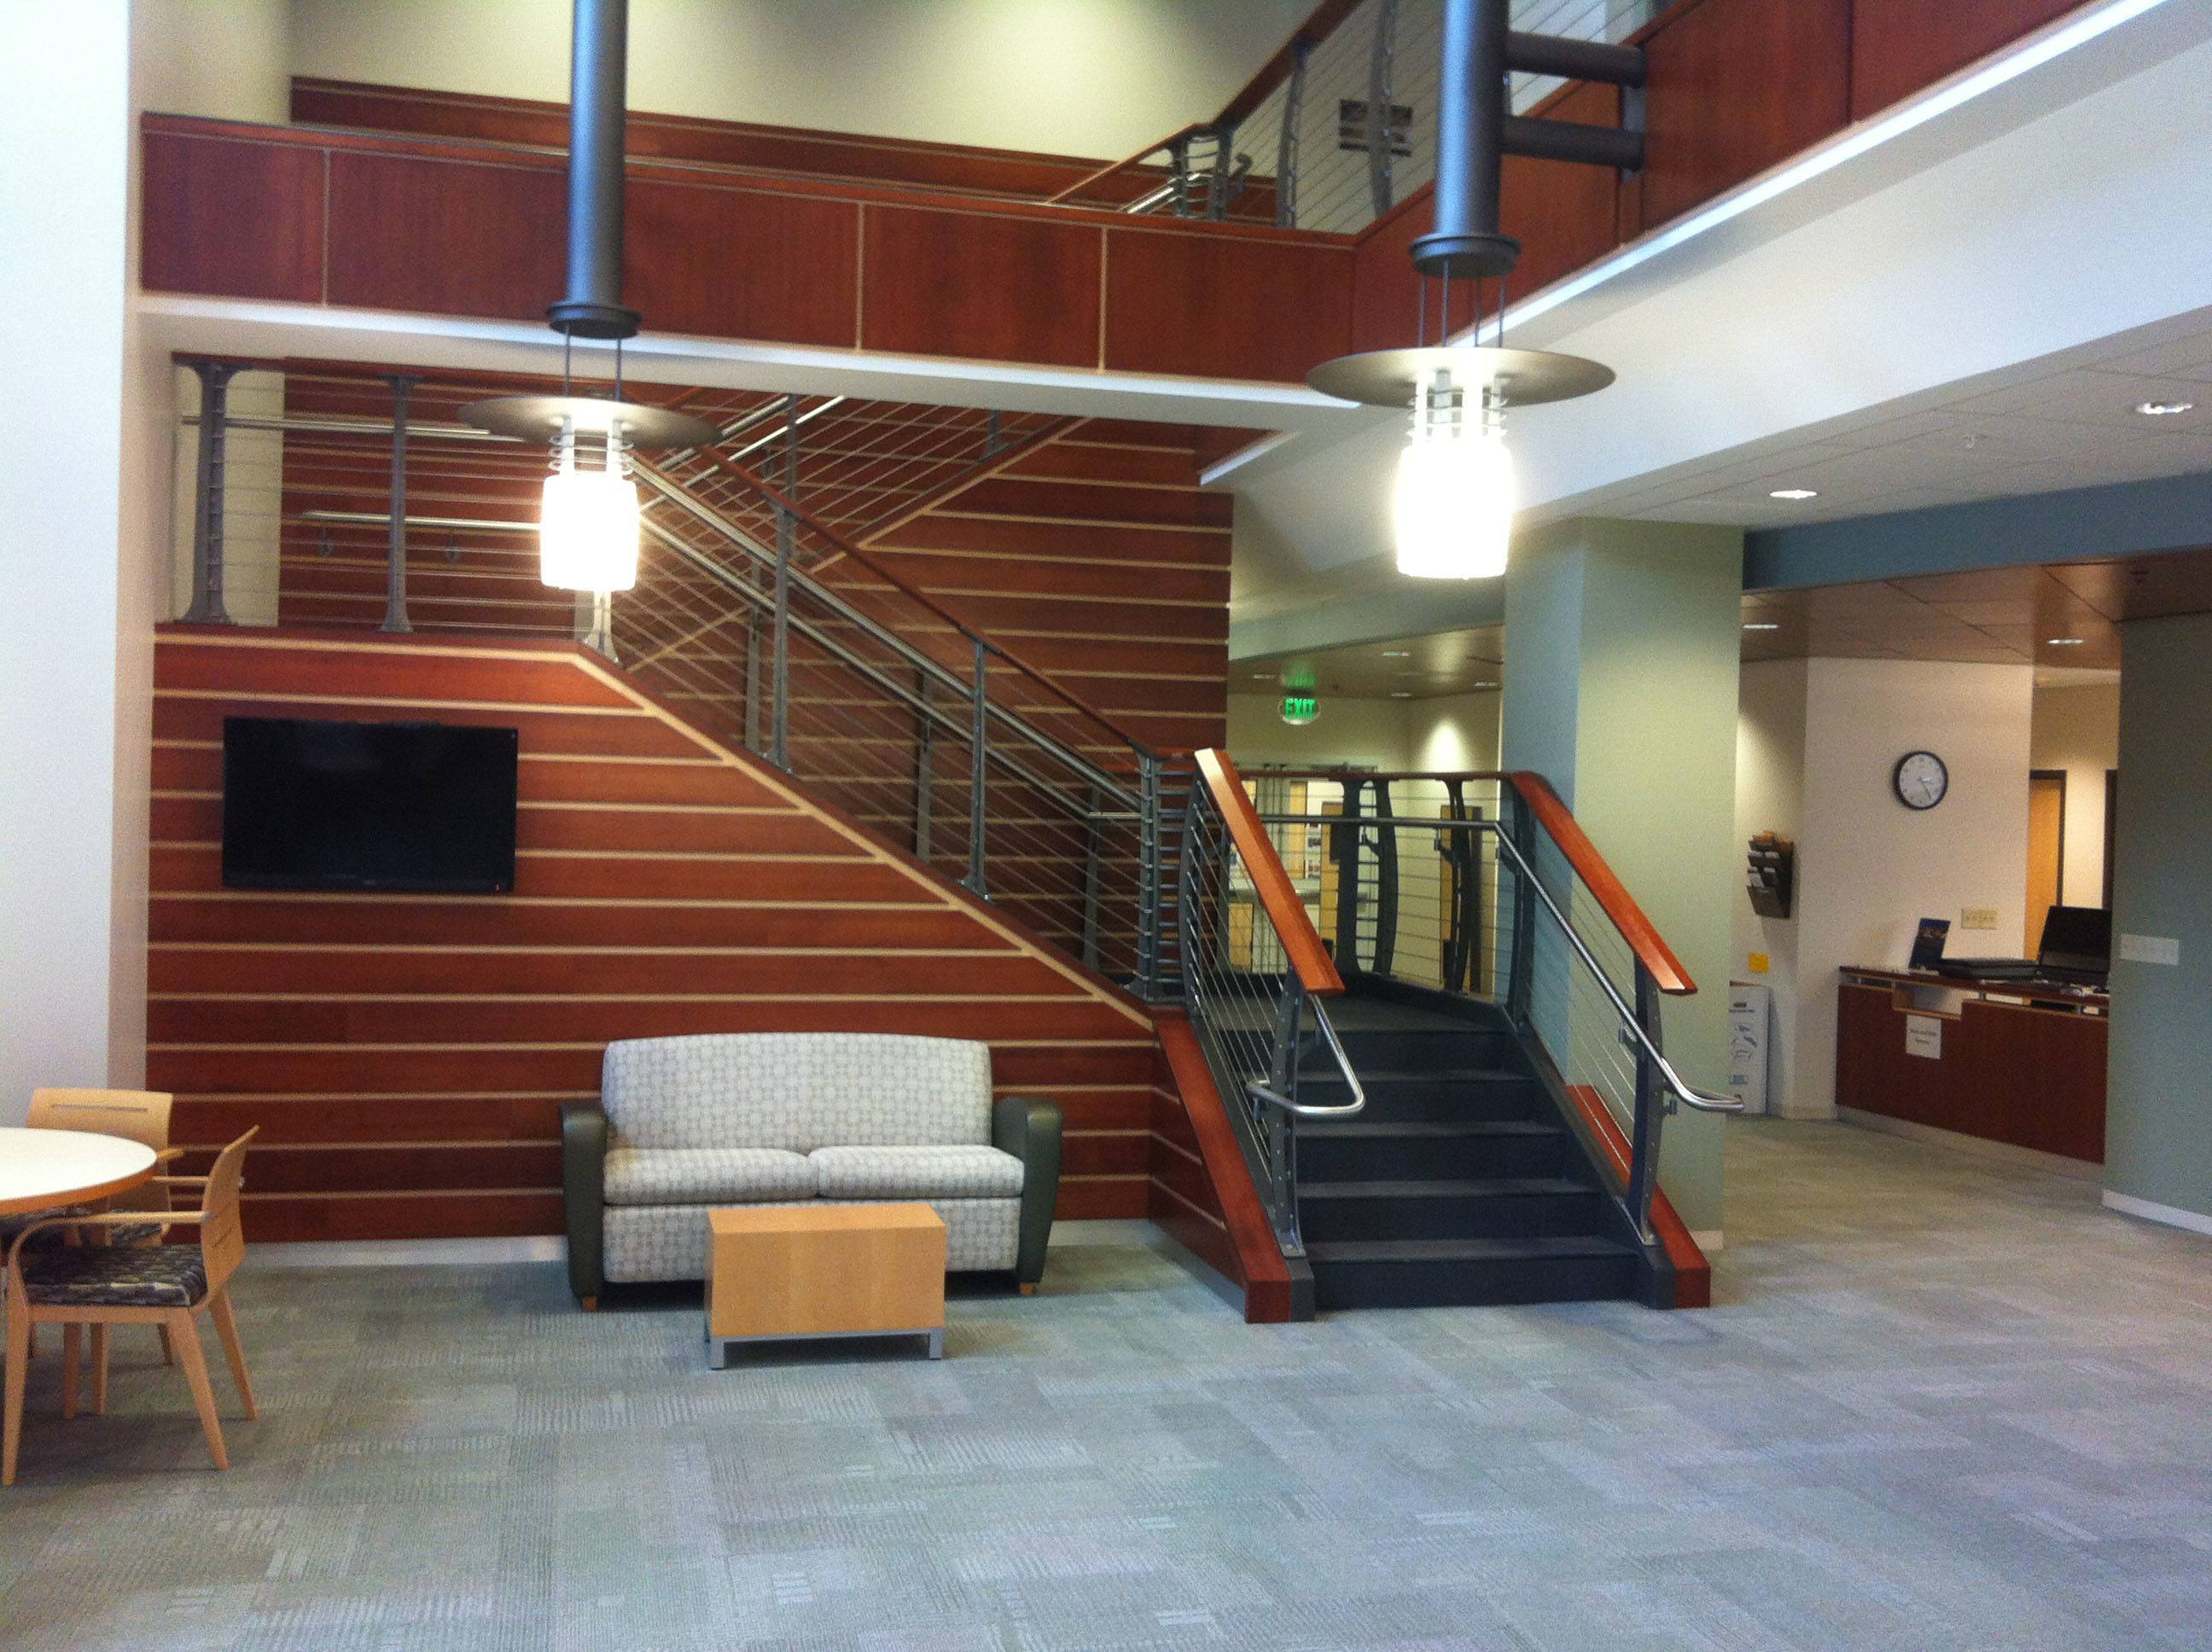 College staricase with stainless ADA handrail and teak and holly style paneling